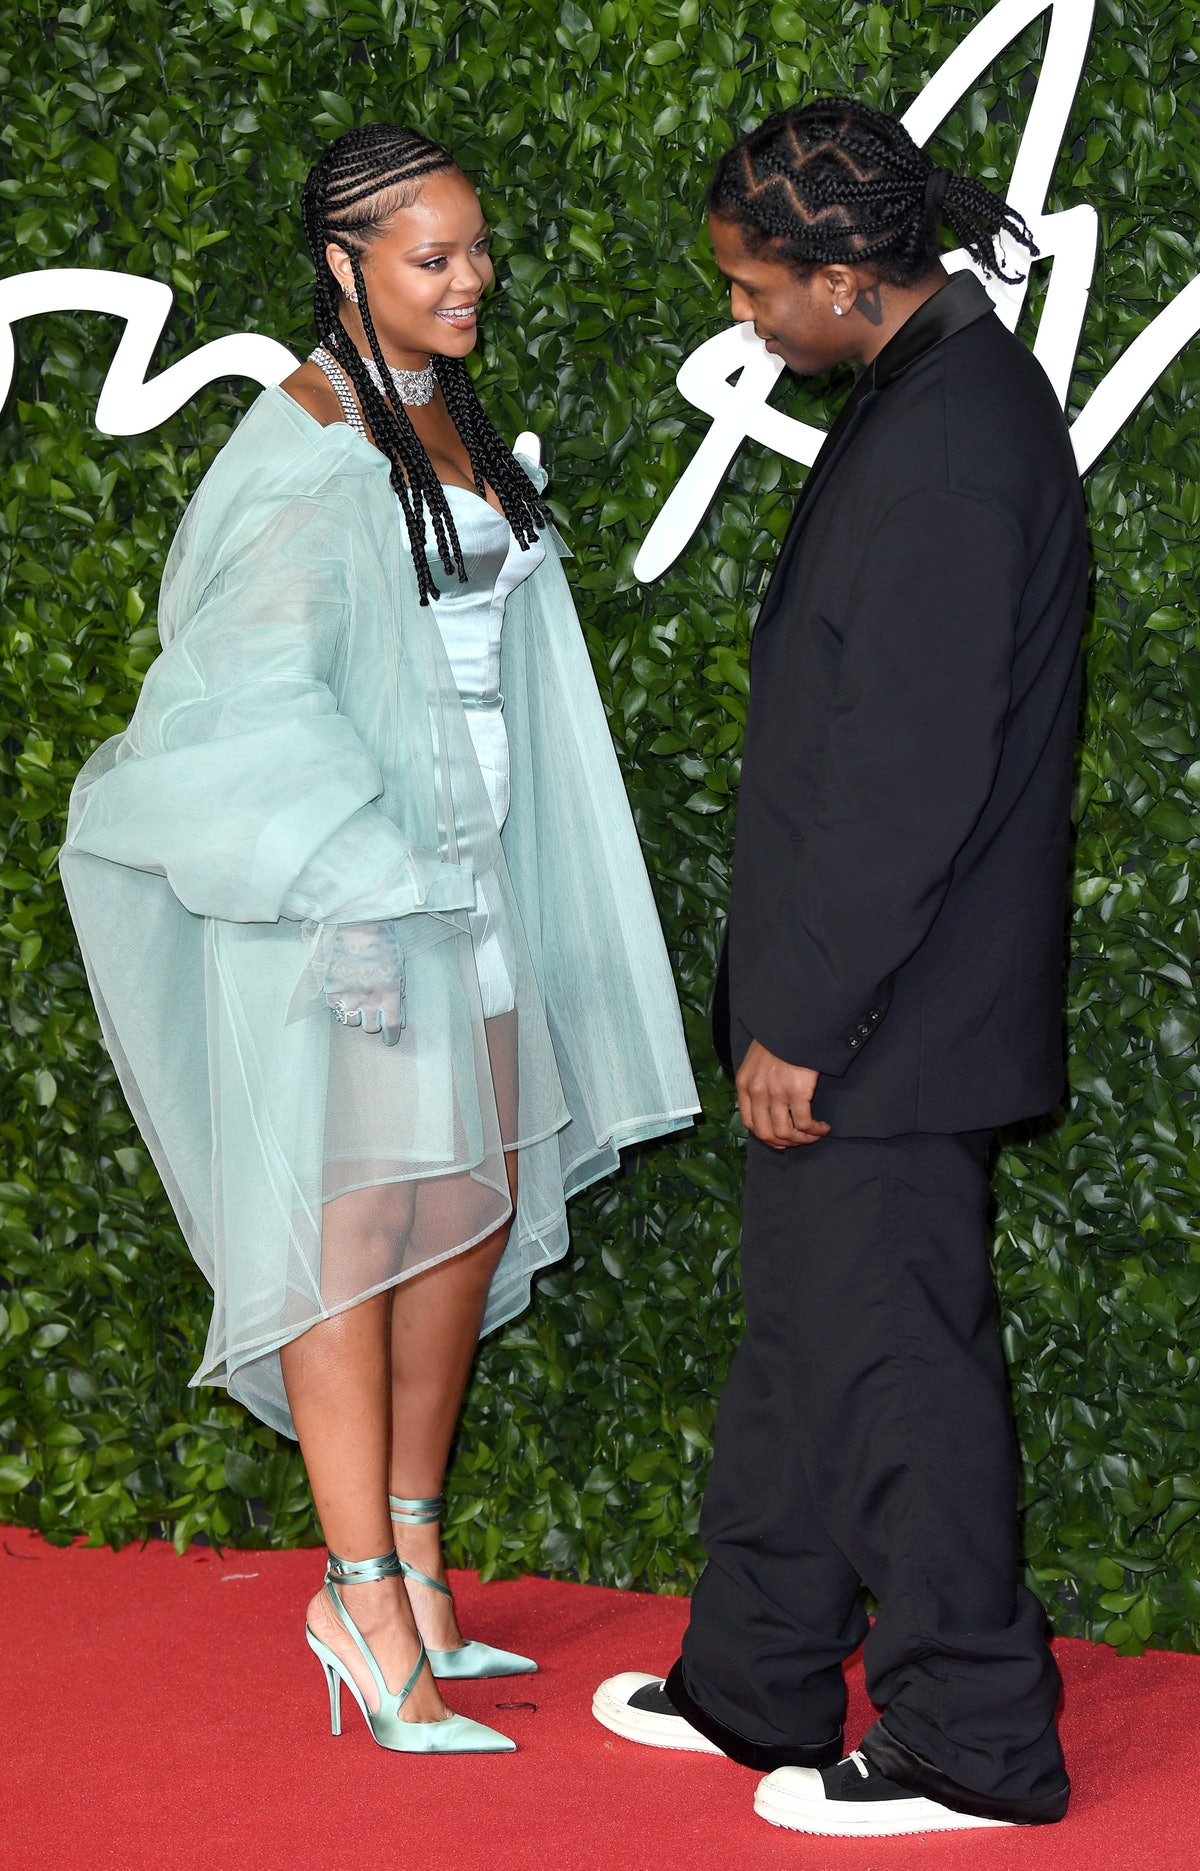 Rihanna and ASAP Rocky attend The Fashion Awards 2019 in London, England; may get engaged soon. (Pho...